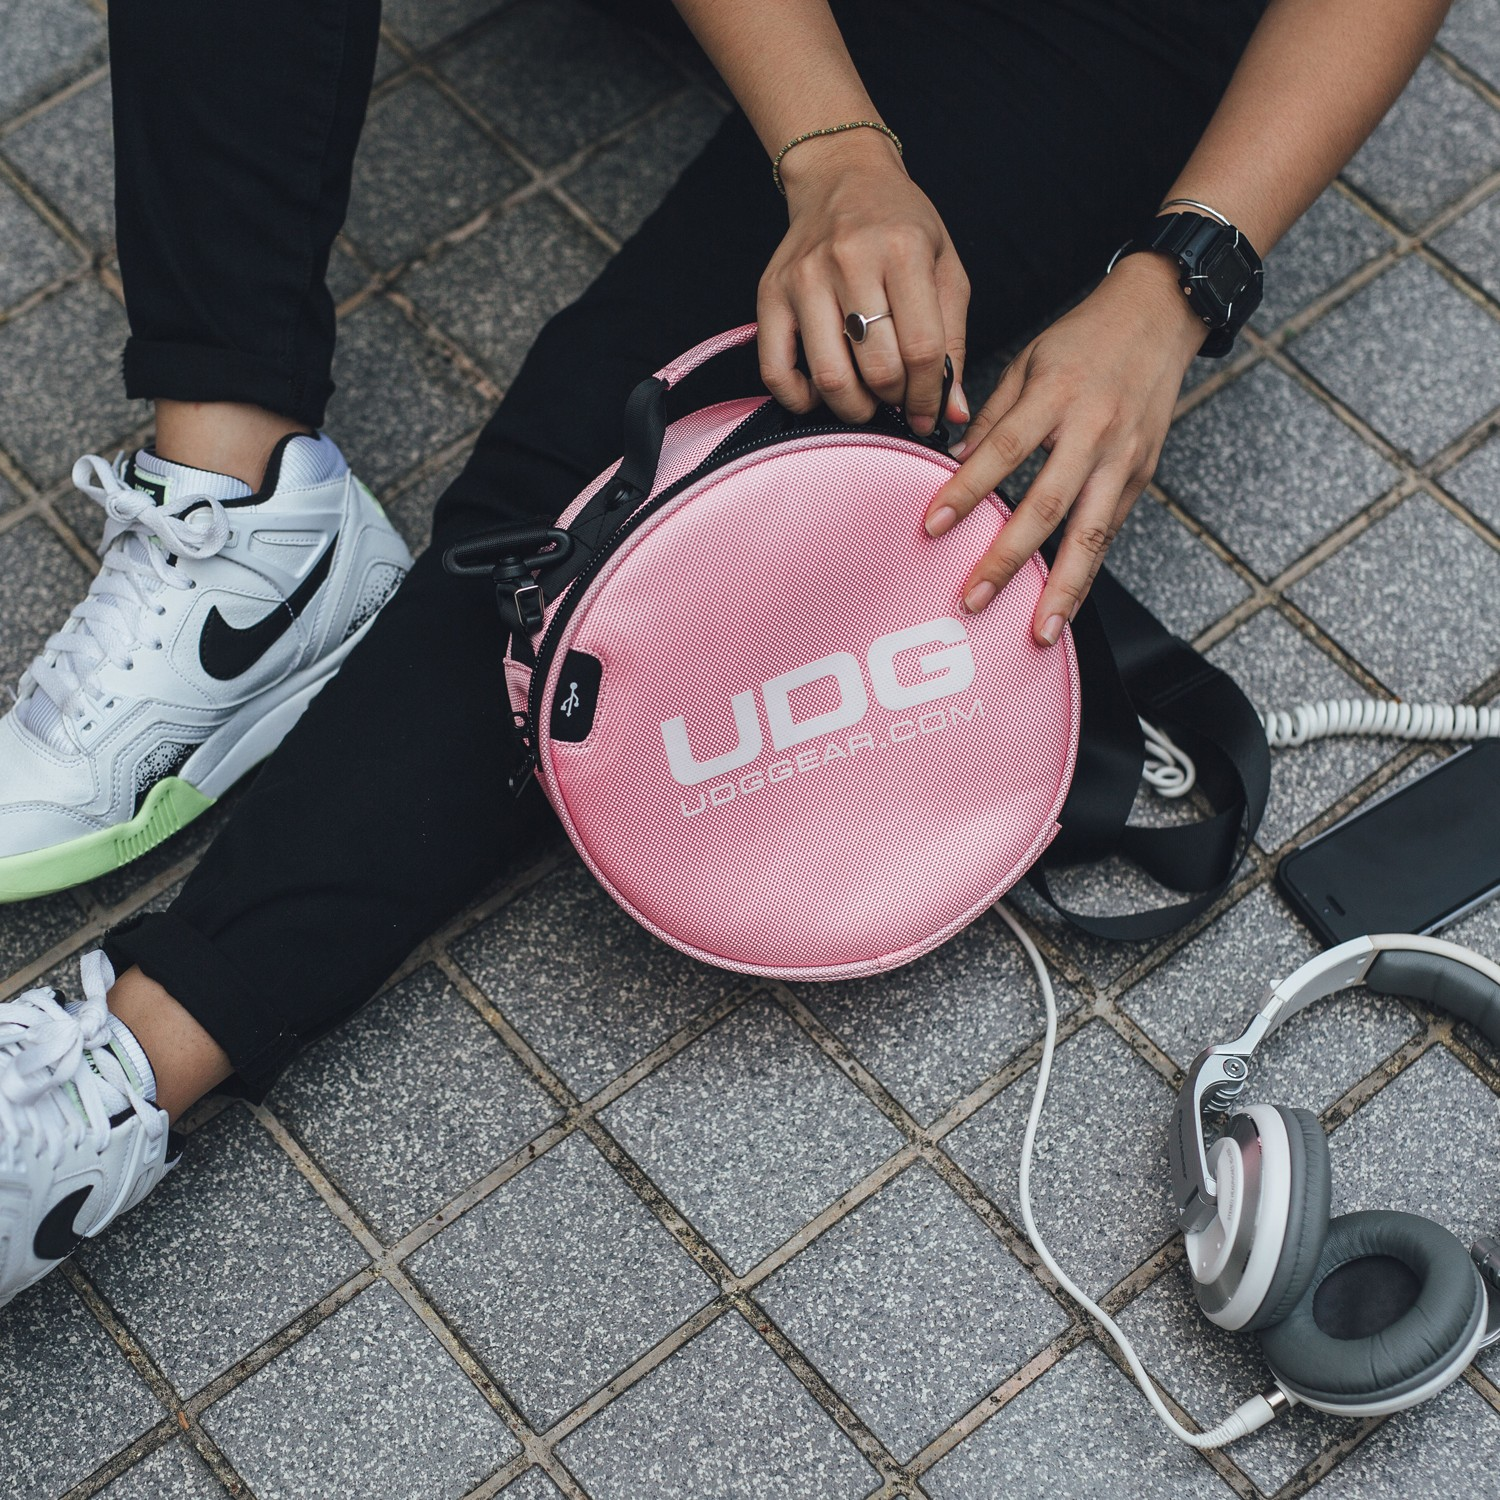 BOLSA UDG ULTIMATE DIGI HEADPHONE BAG ROSA